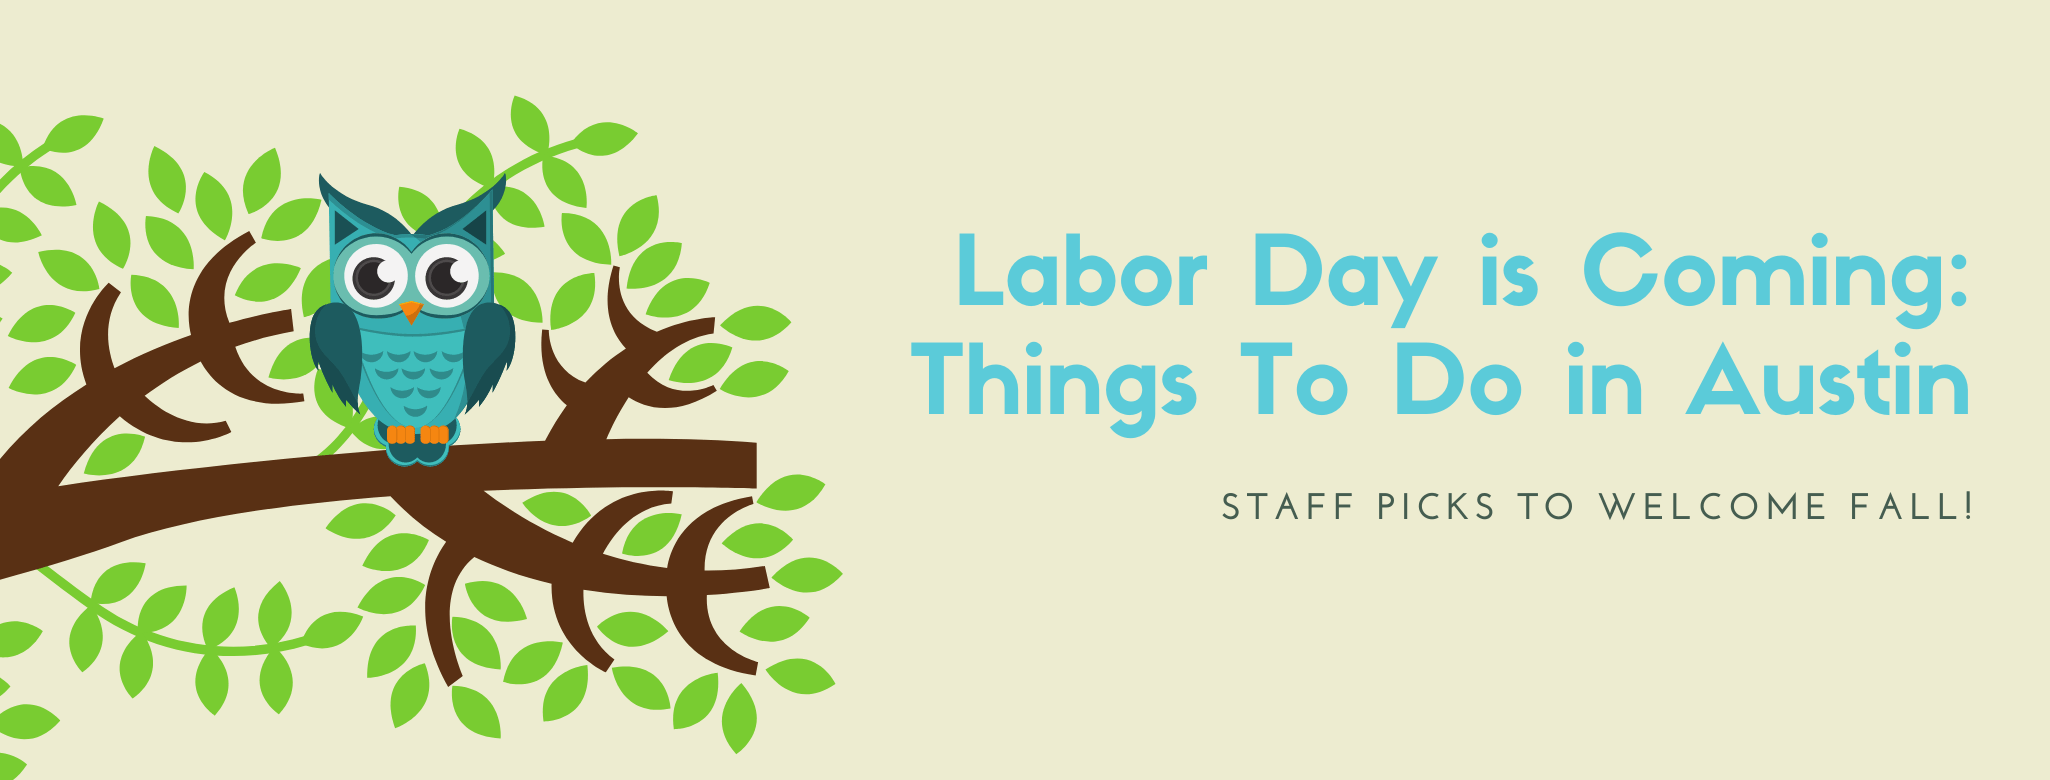 Labor Day is Coming: Things To Do in Austin